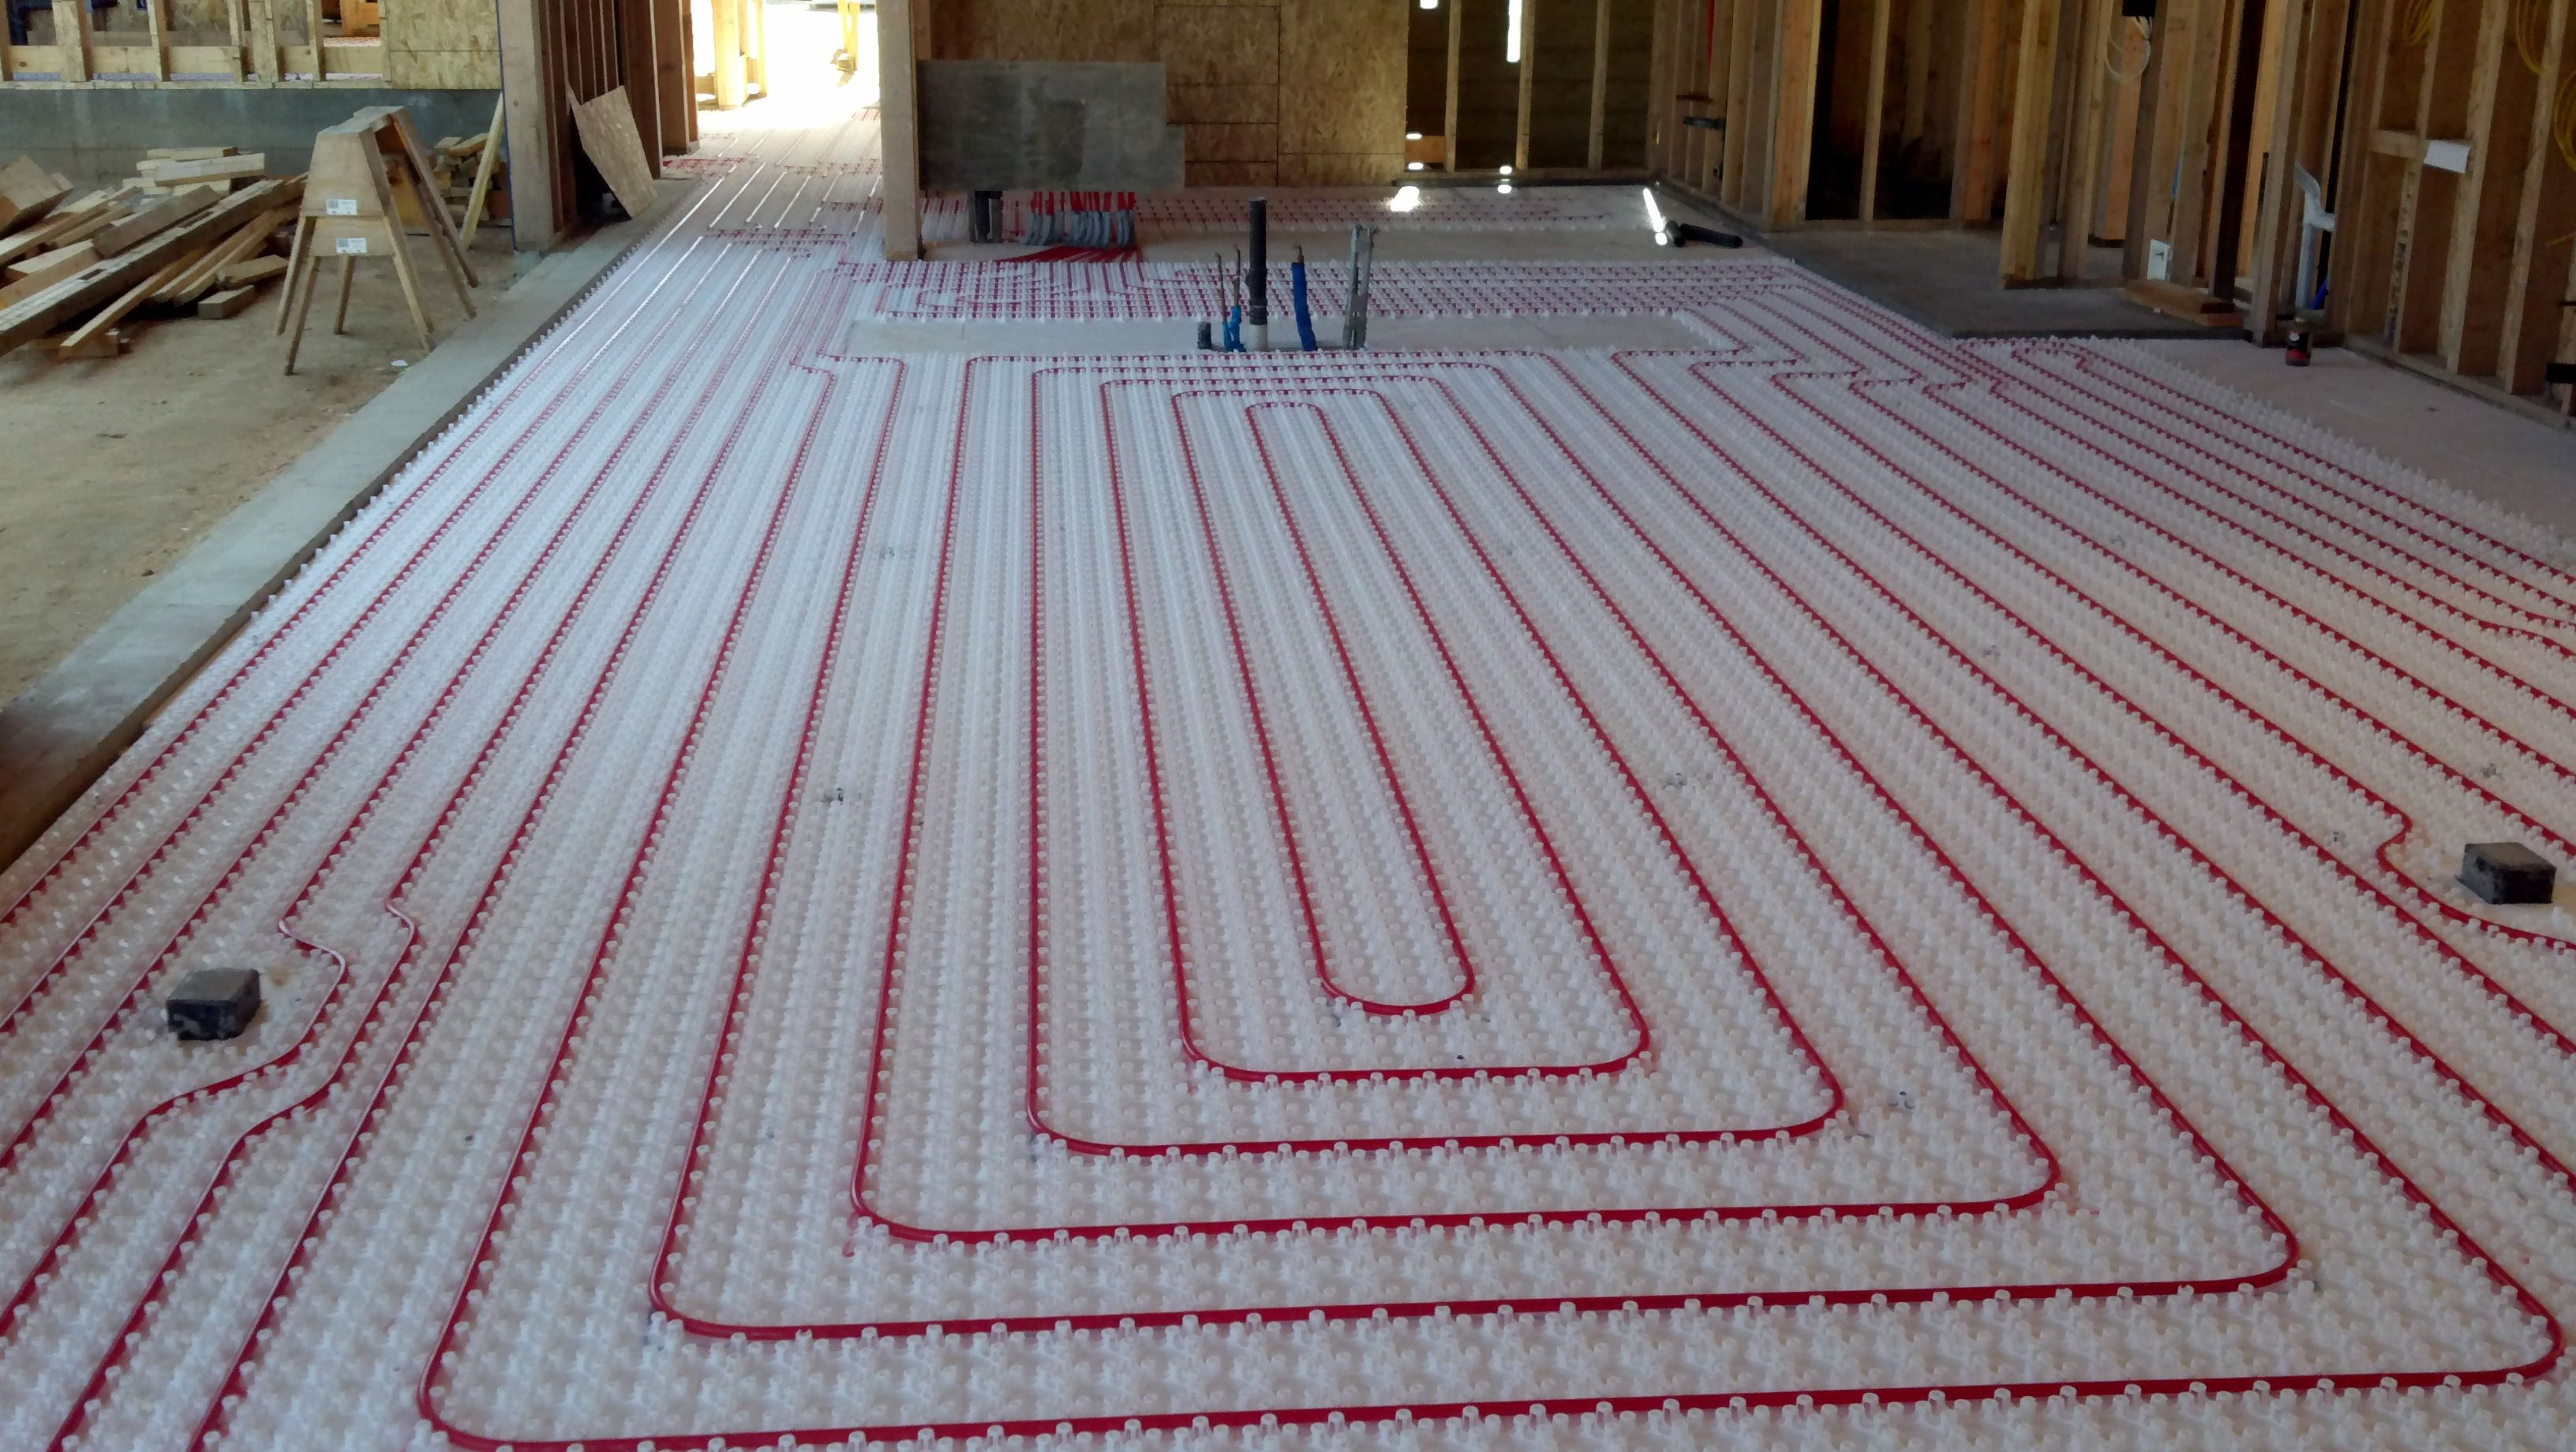 Our Technicians Are Trained In Installation Repair And Maintenance Of Hydronic Heating Systems For S With Images Radiant Floor Heating Floor Heating Systems Radiant Floor